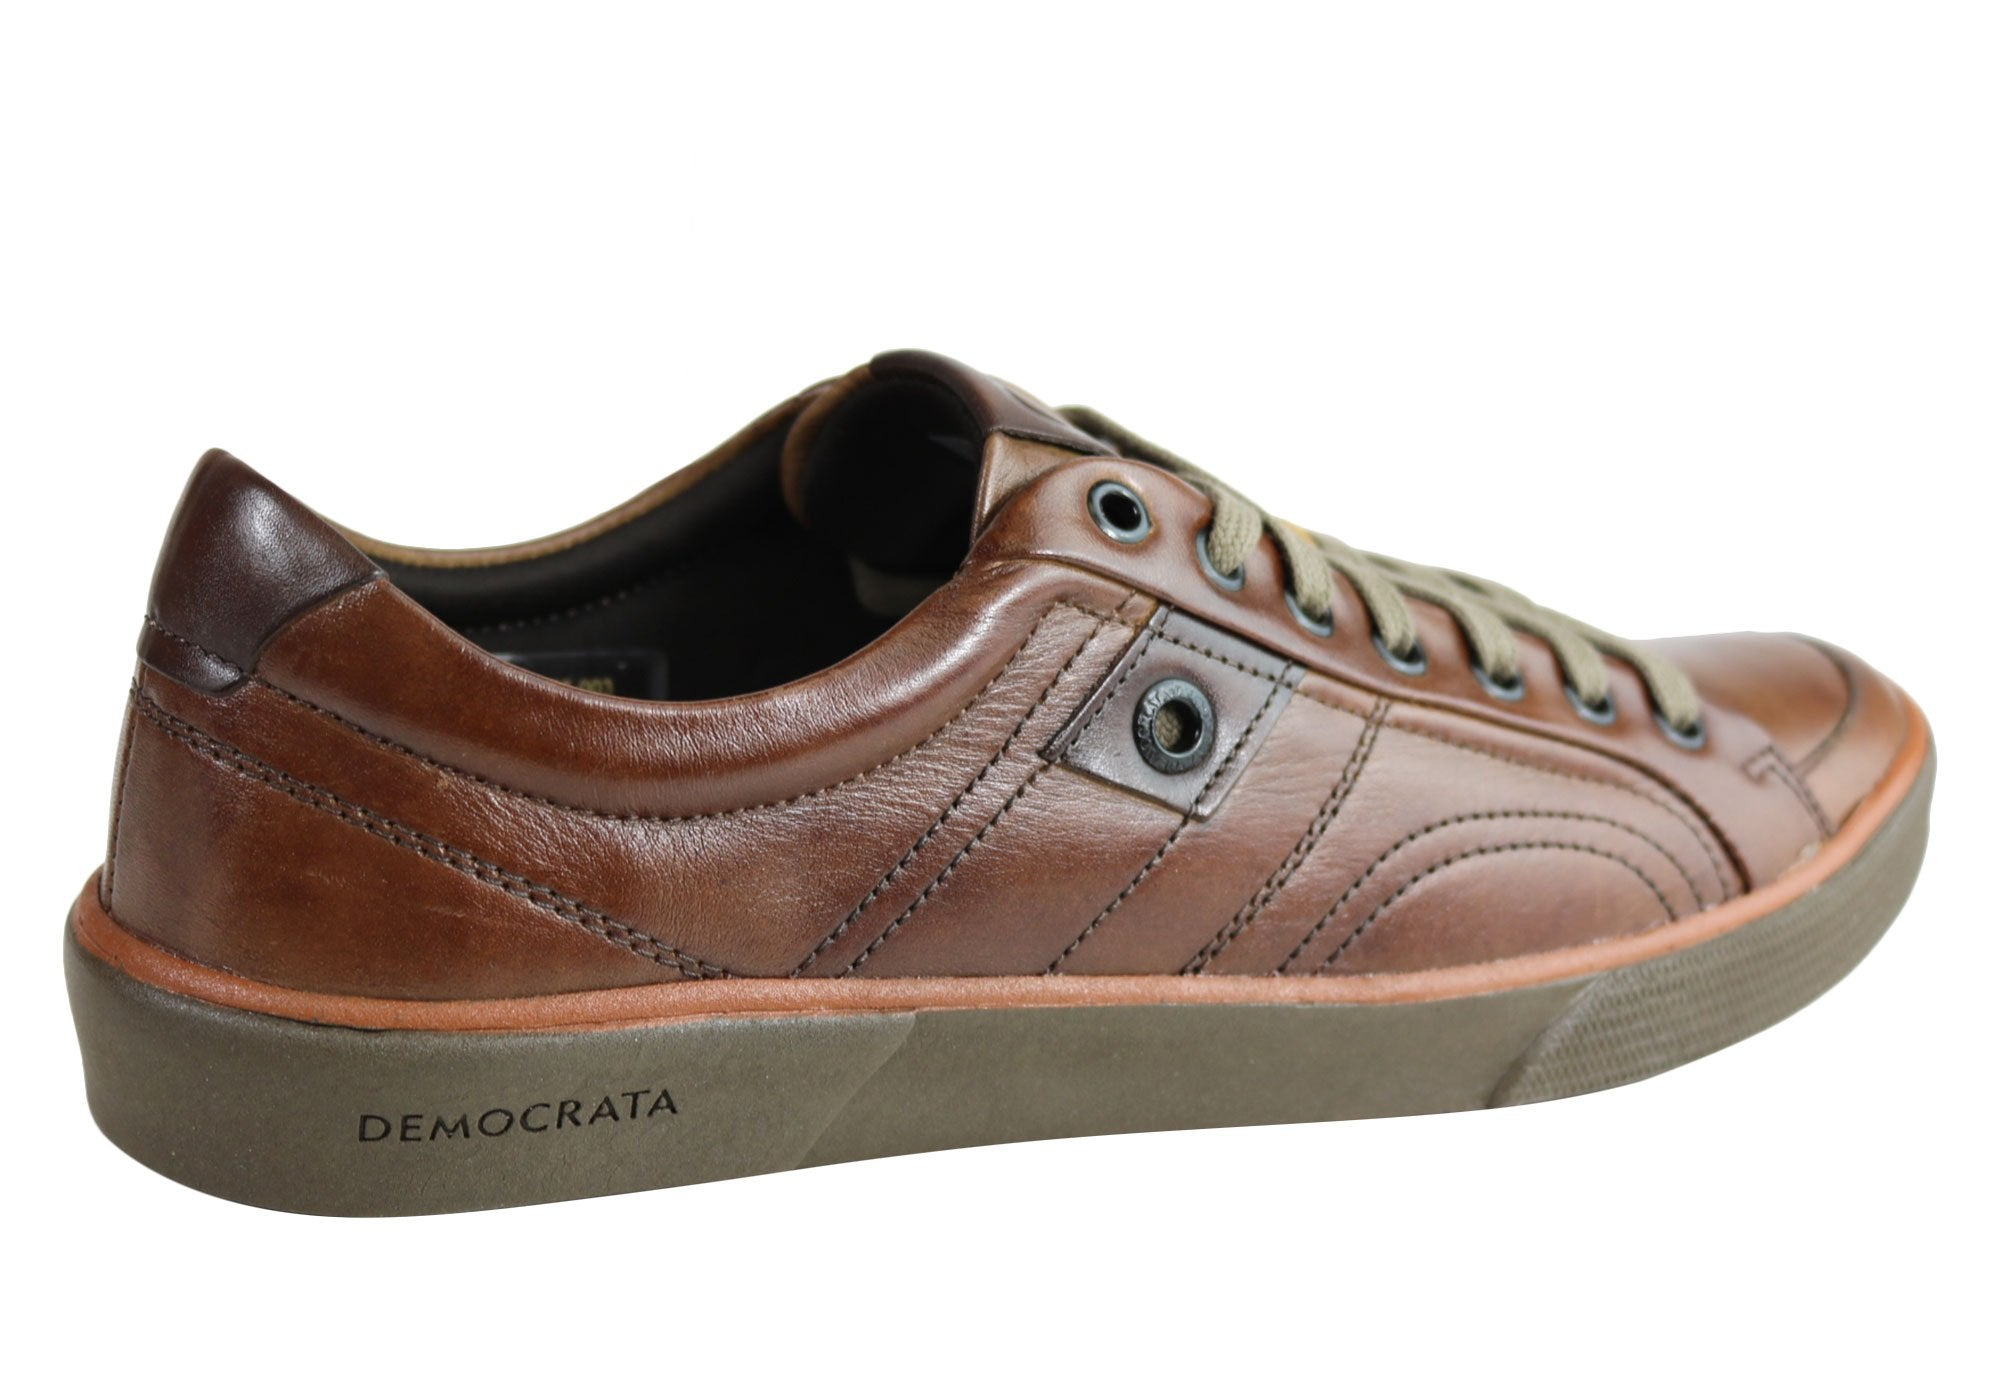 NEW DEMOCRATA JETT MENS LEATHER LACE UP CASUAL SHOES MADE IN BRAZIL